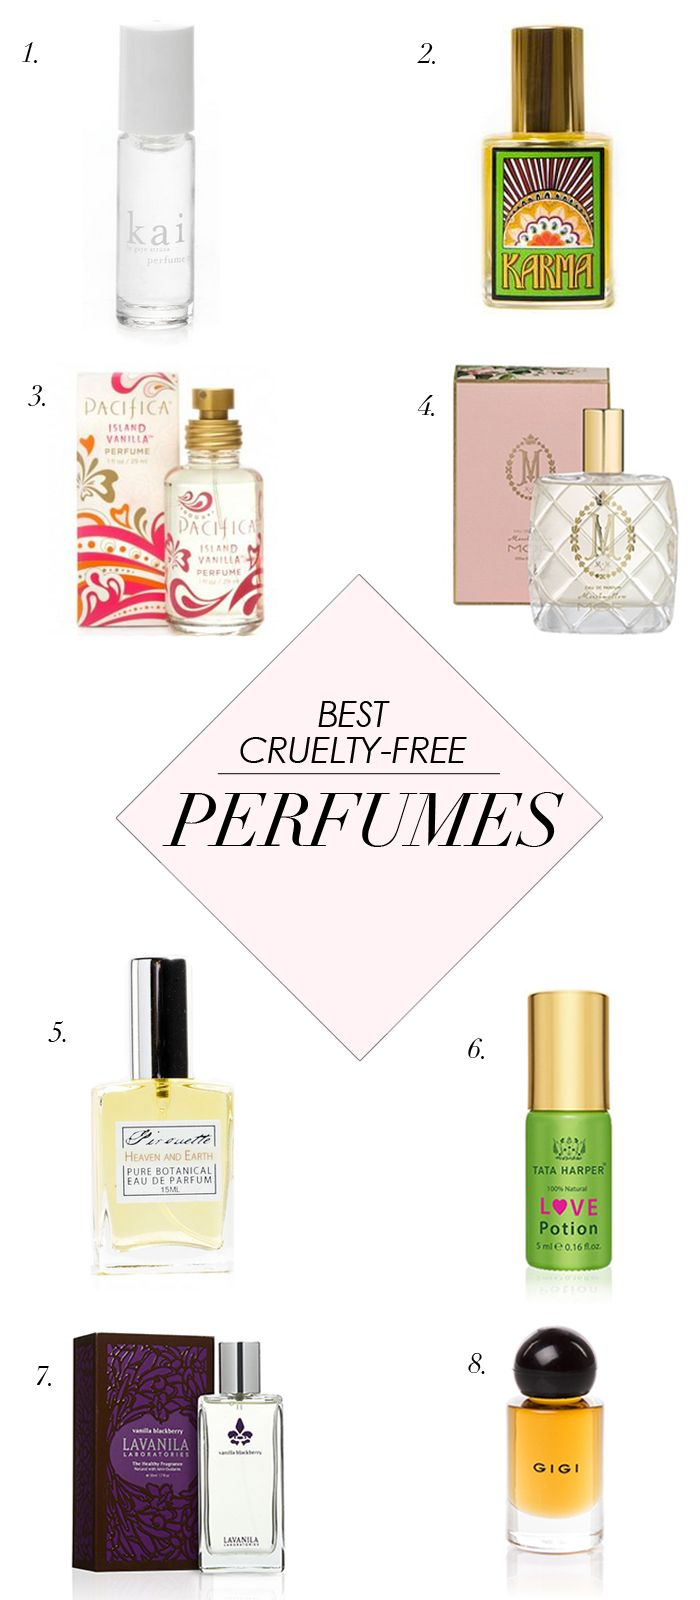 The Best Cruelty-Free Fragrances